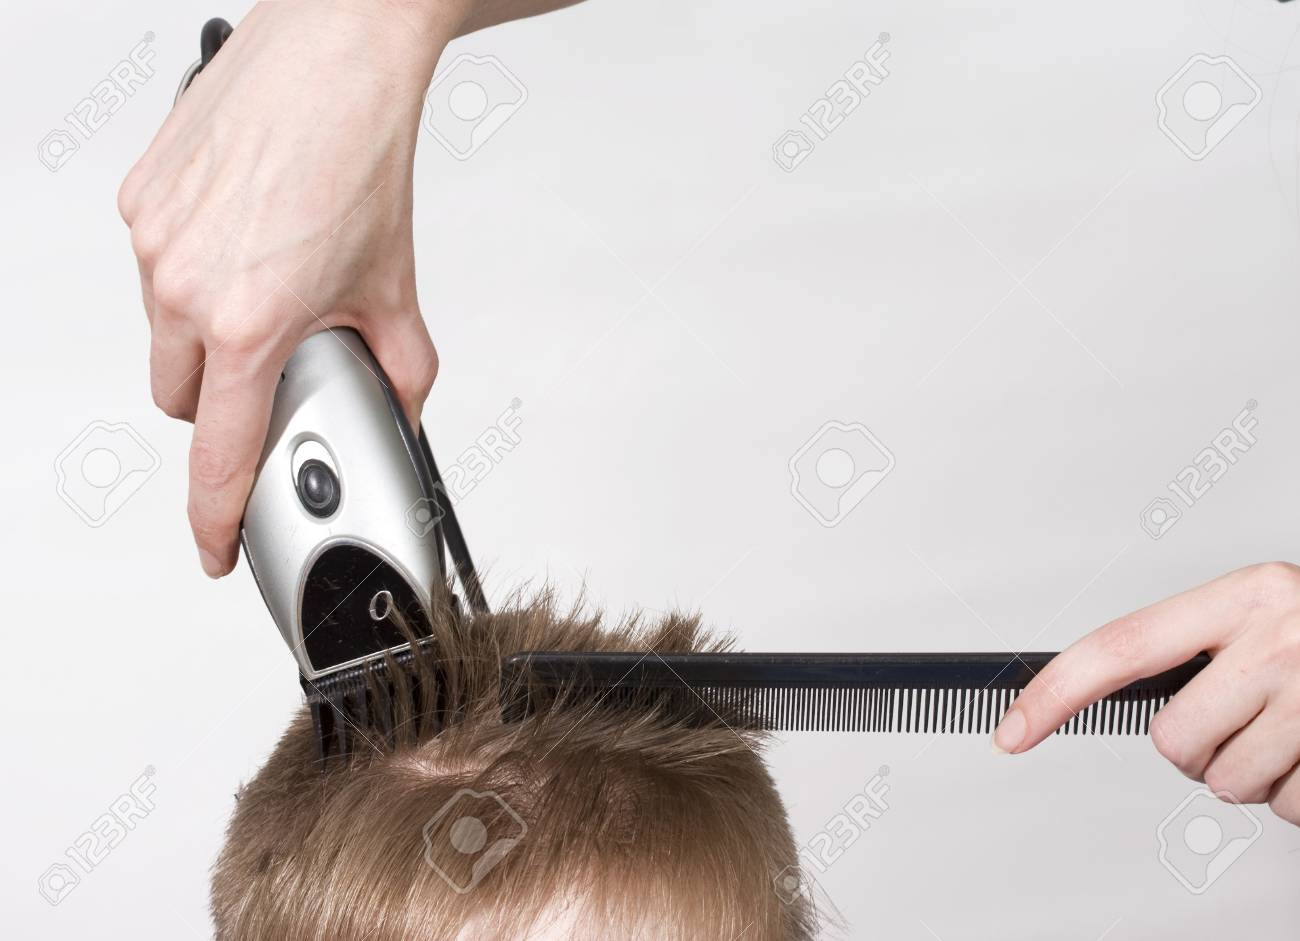 Hairstyle machine, kind in the rear Stock Photo - 4528018